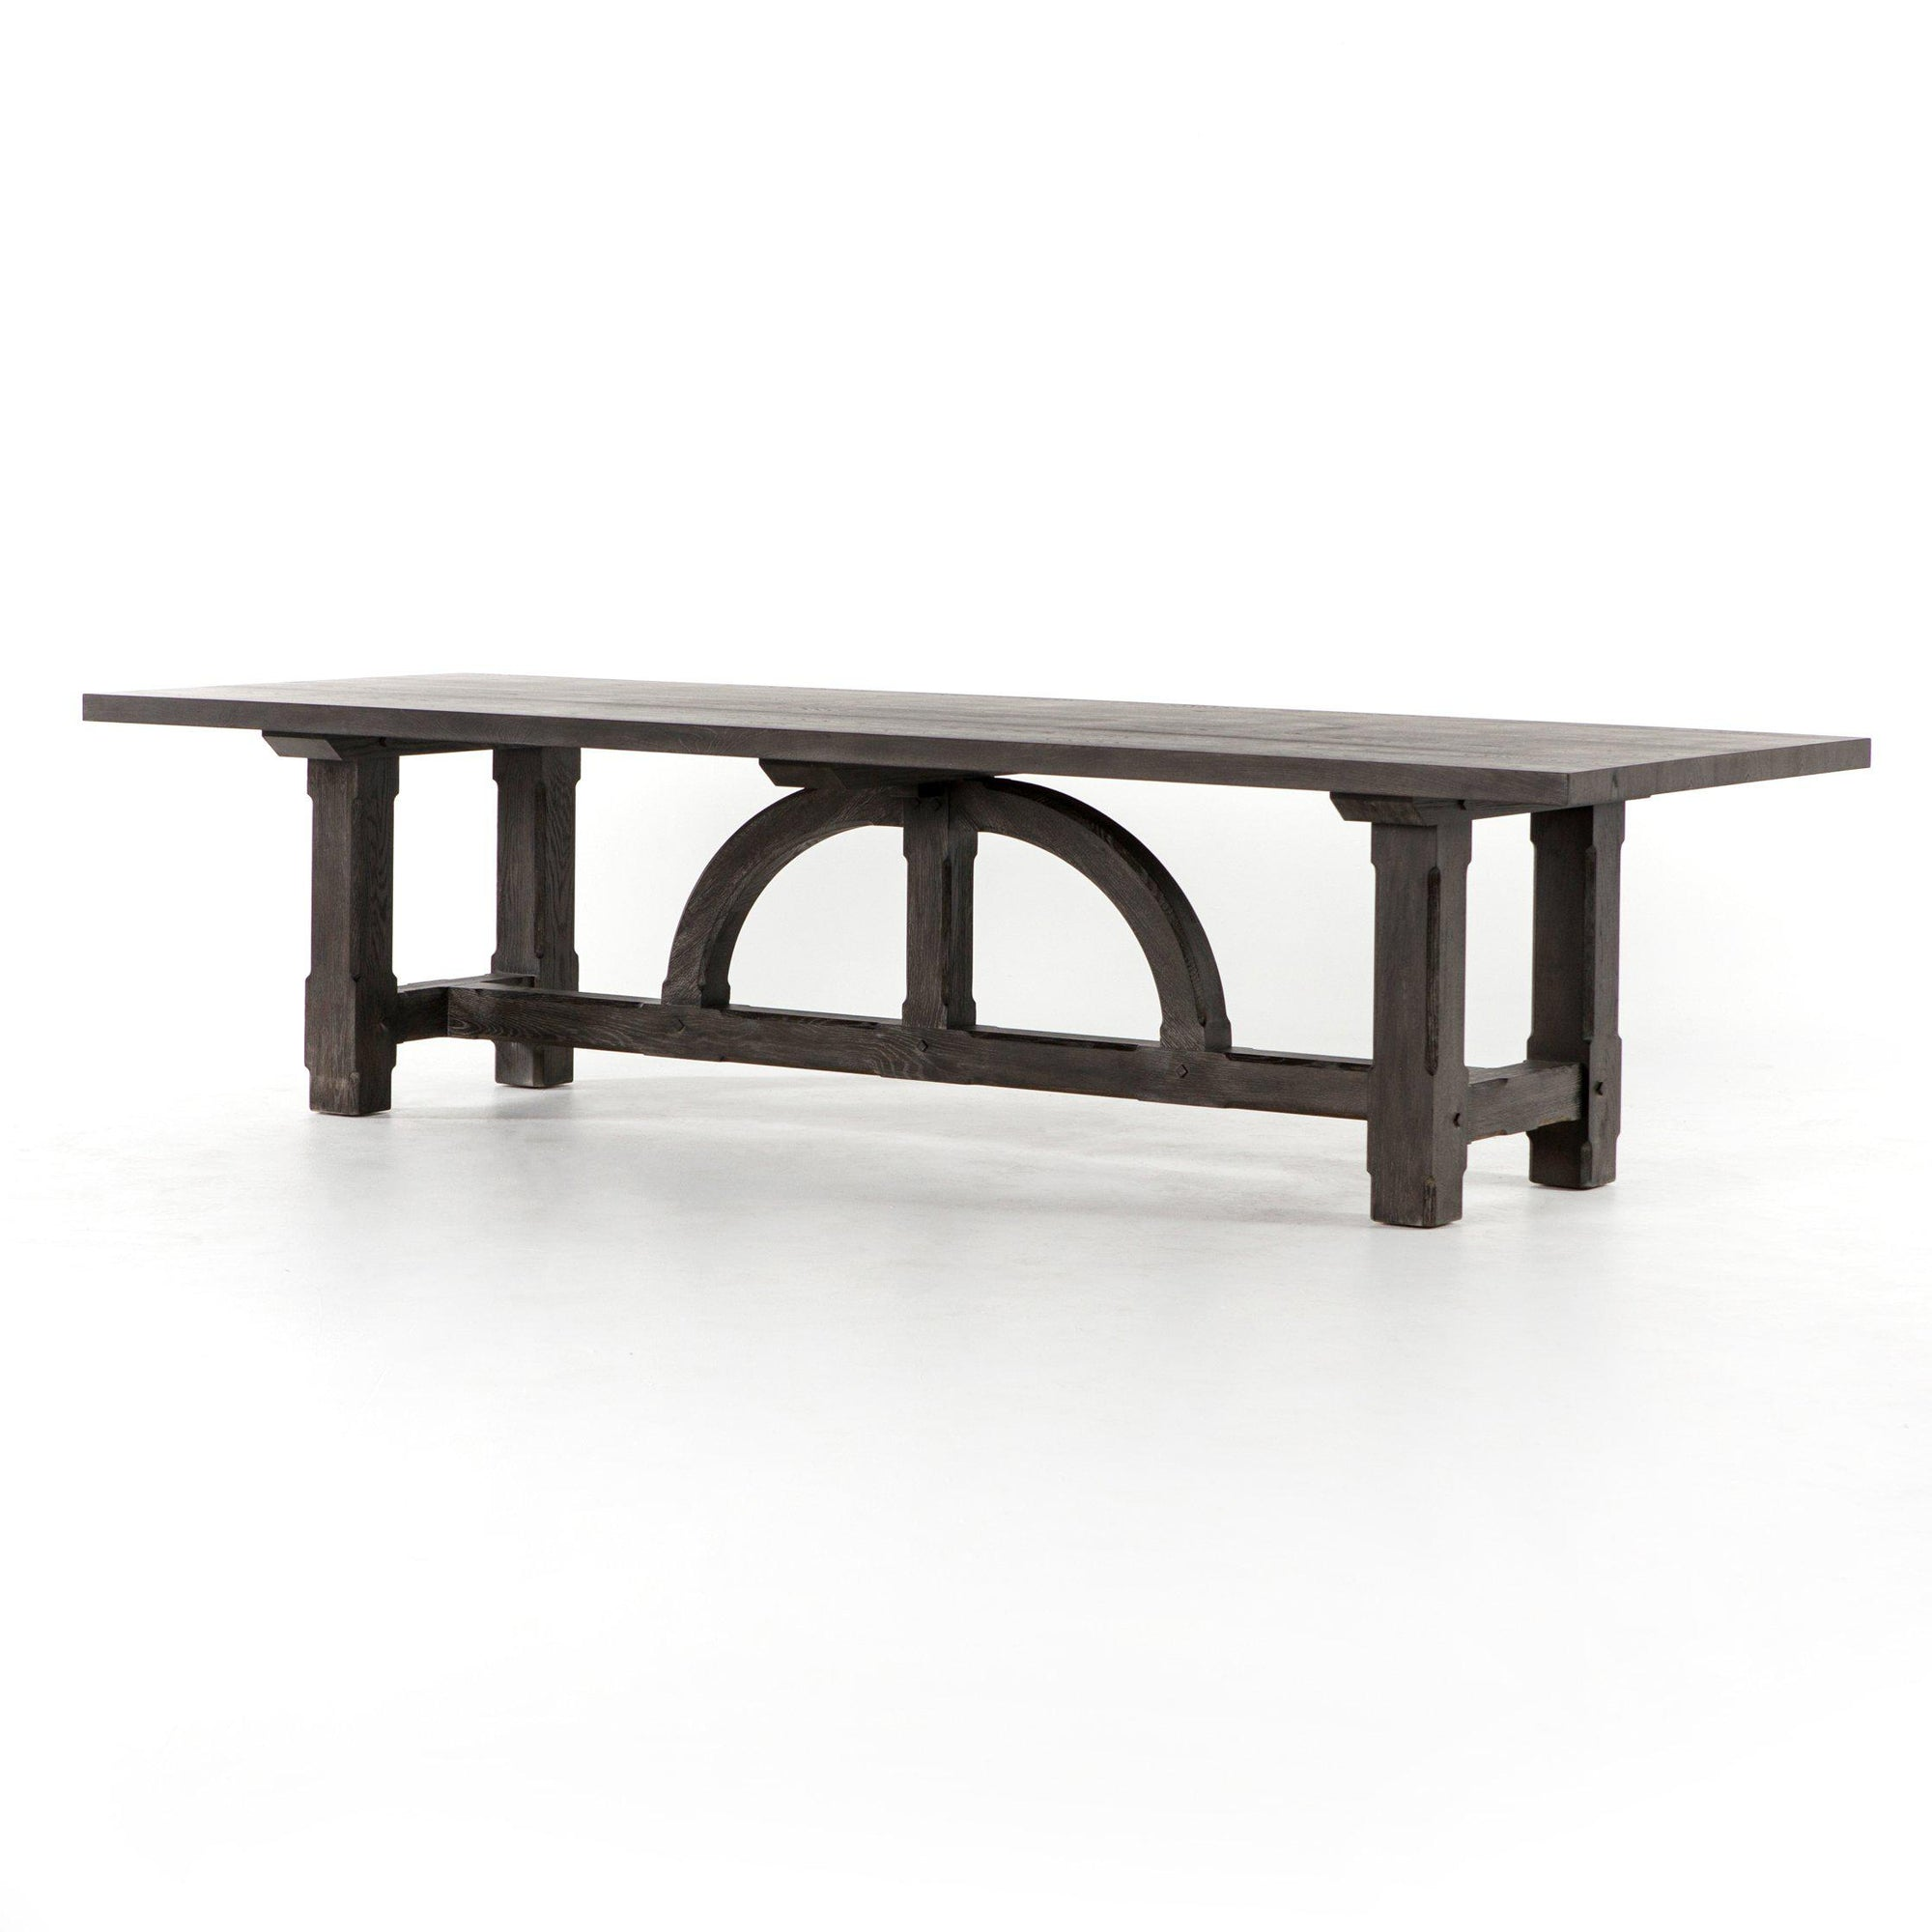 Acme dining table